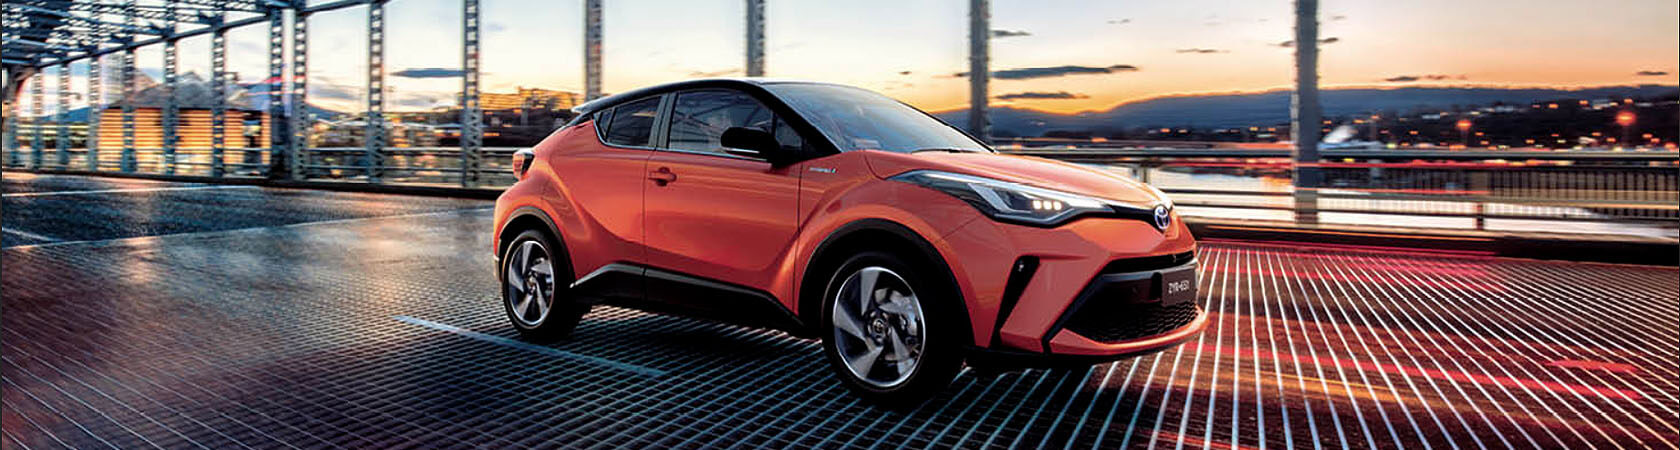 Peter Kittle Toyota - Alice Springs C-HR